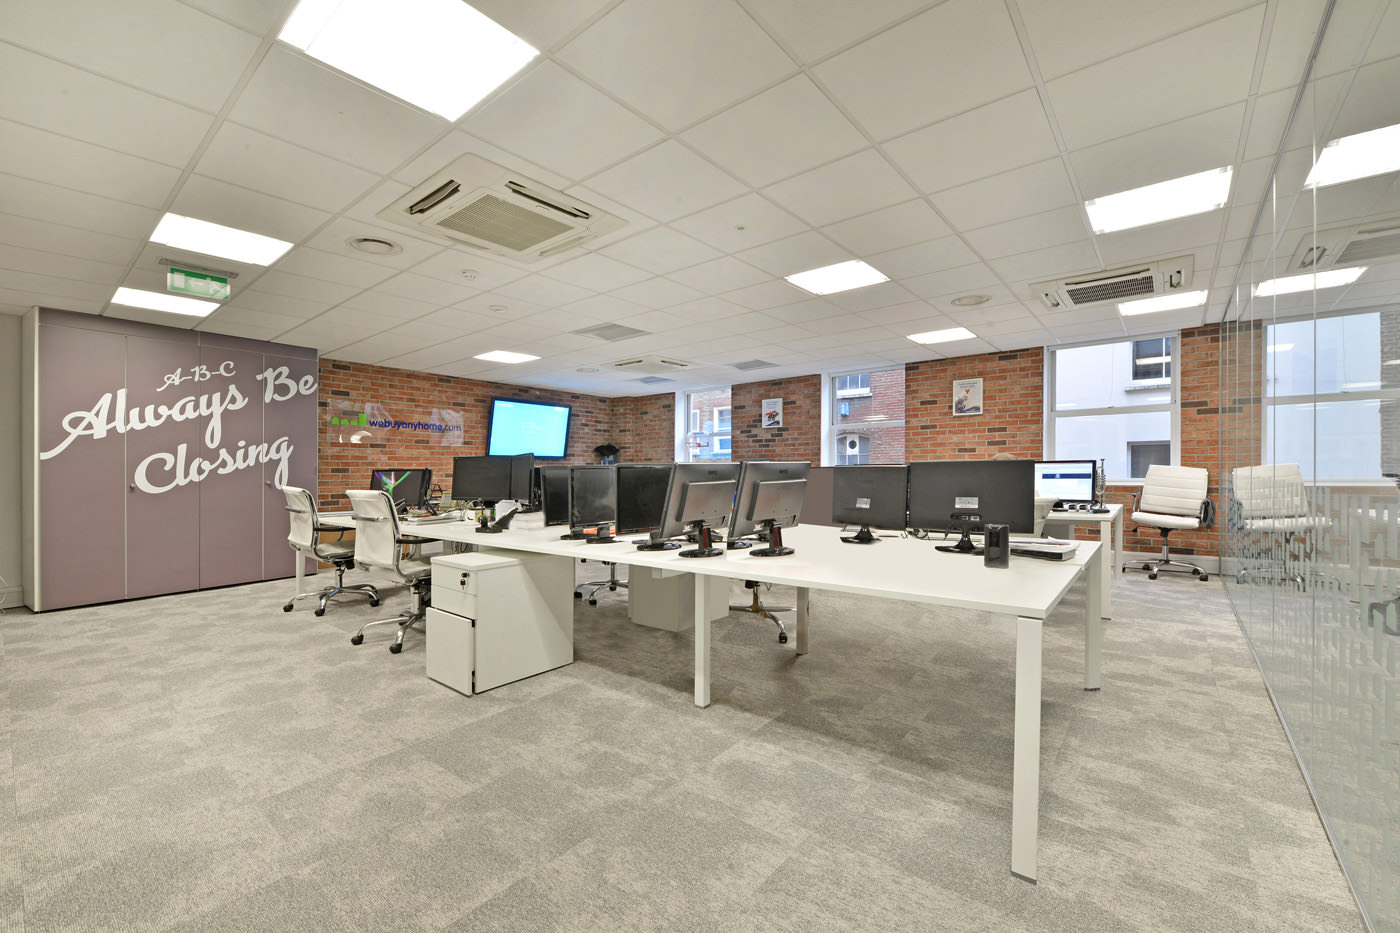 Maddox Street Office Fit Out Mayfair Communal Work Space Long Angle